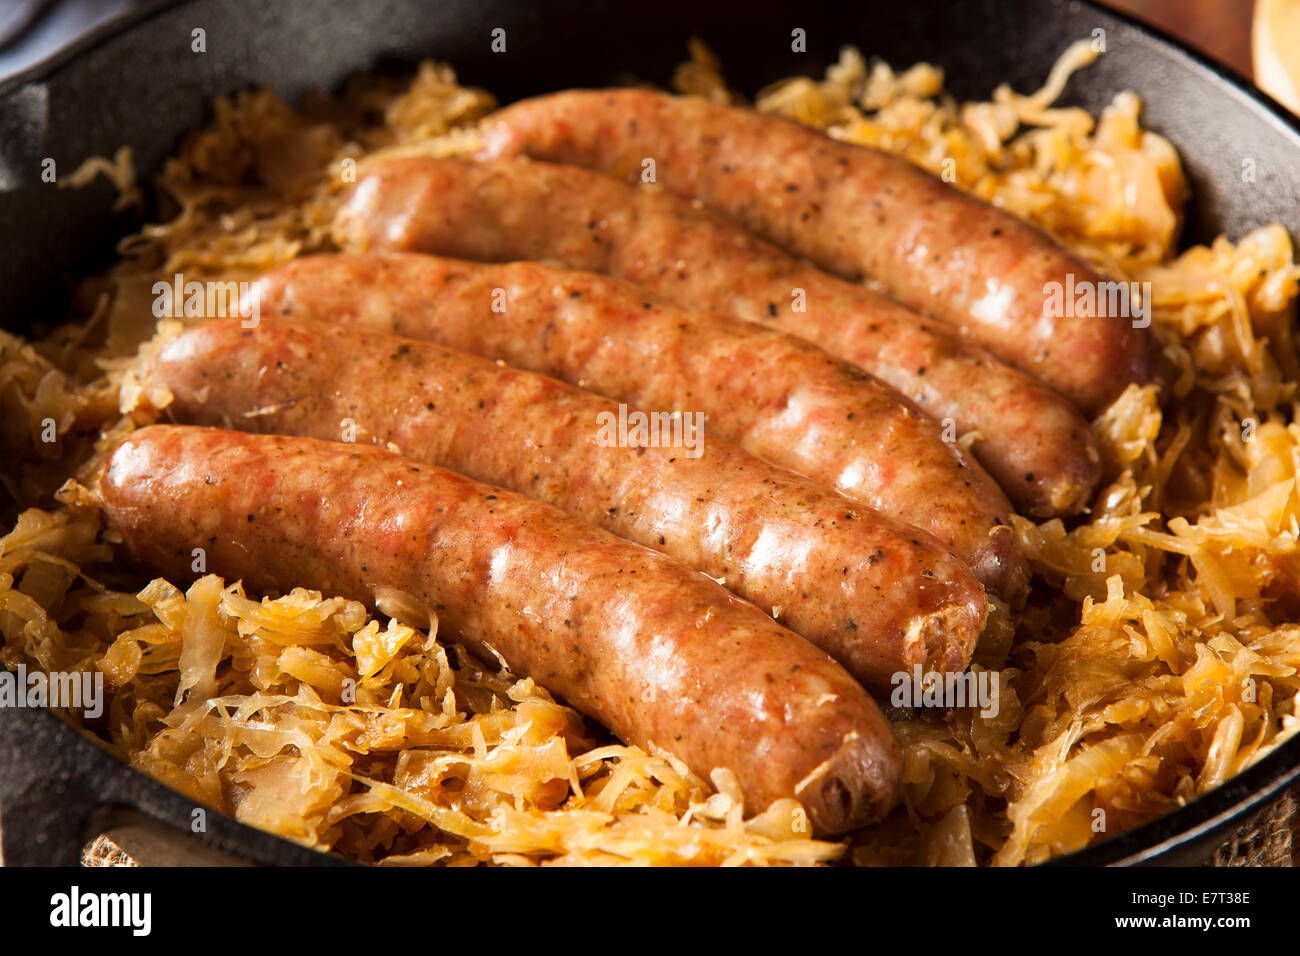 Roasted Beer Bratwurst with Saurkraut in a Pan Stock Photo